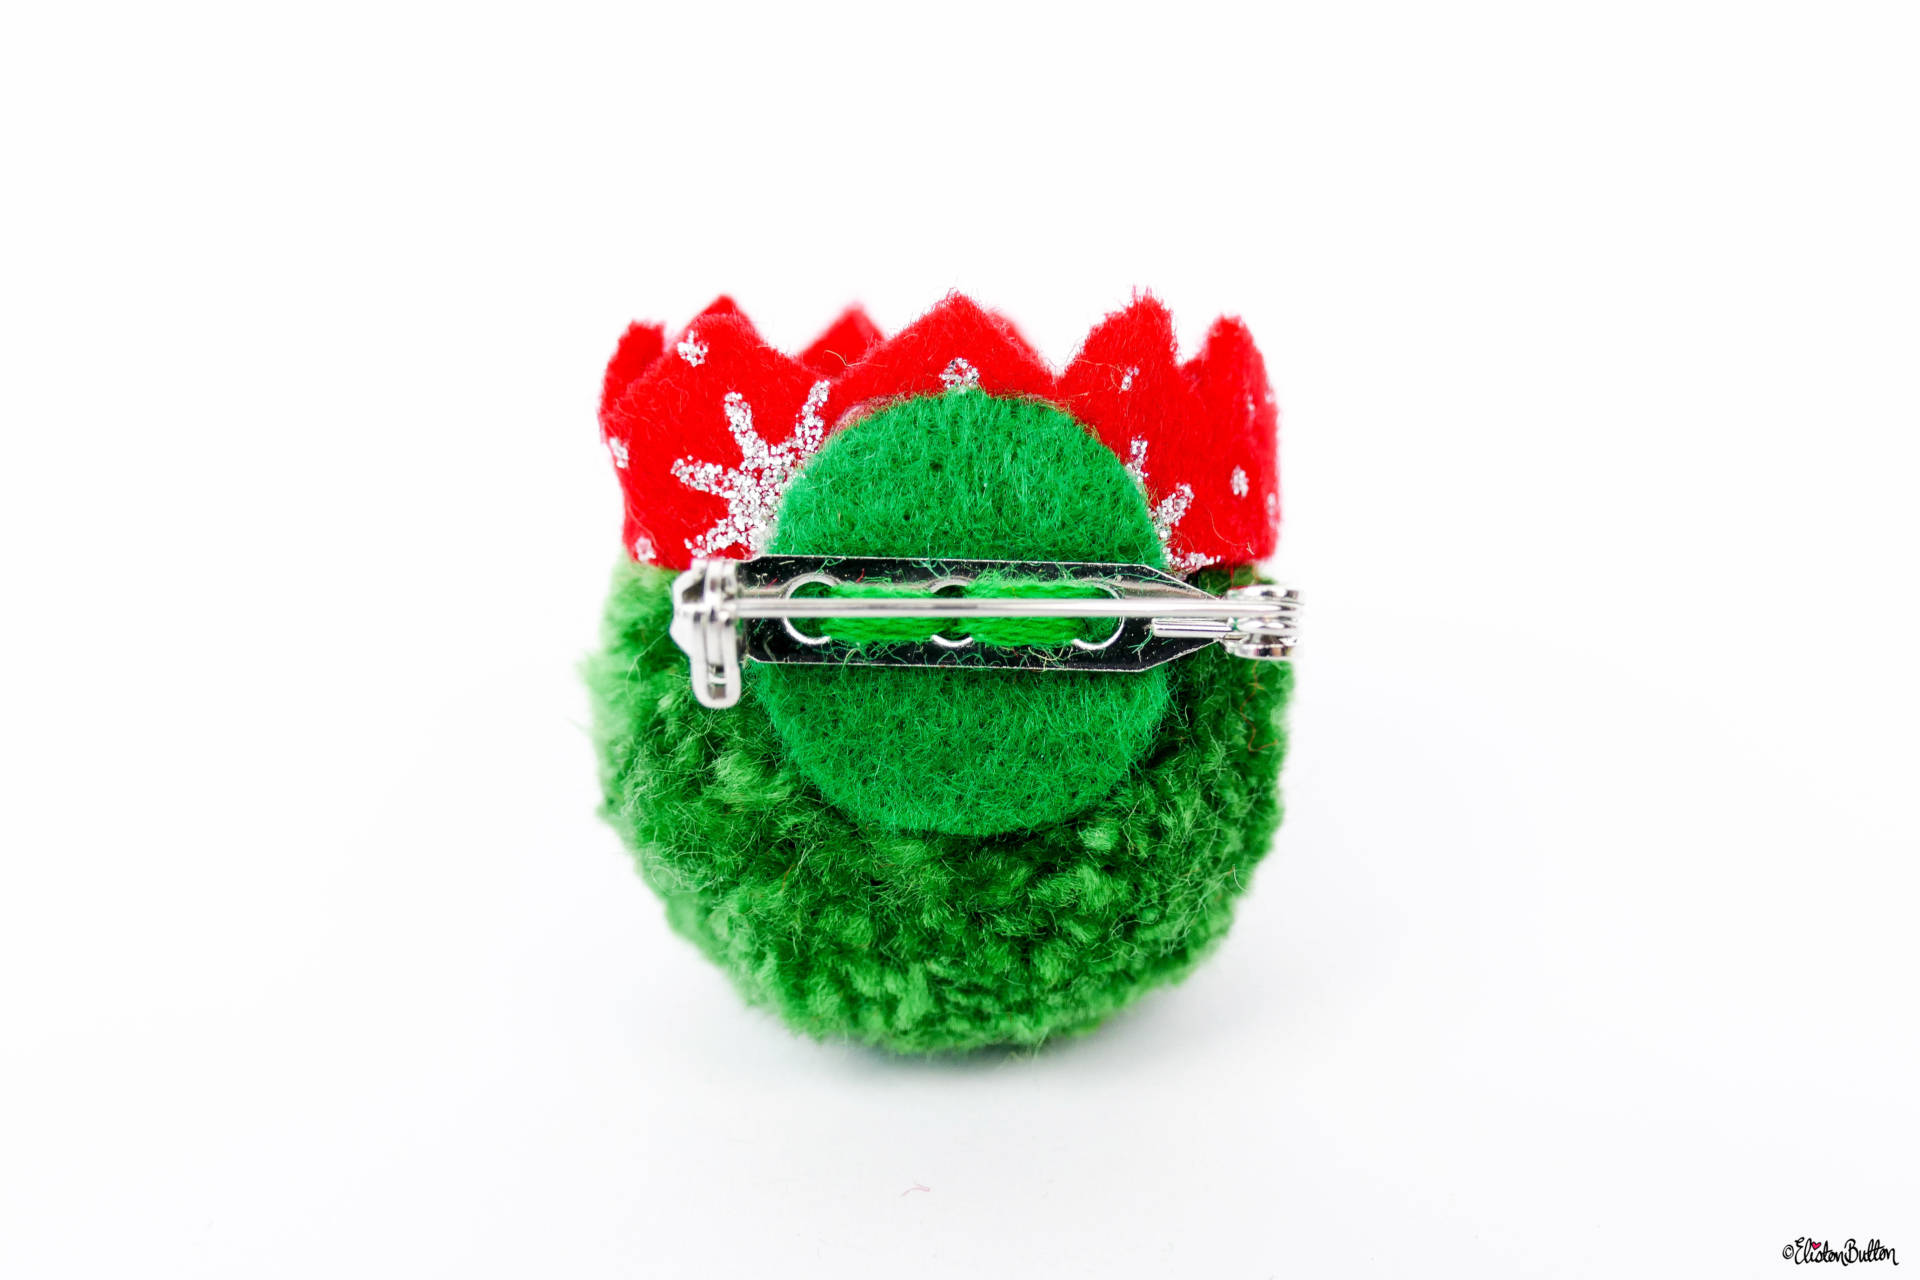 Dark Green Christmas Sprout Pom Pom Brooch with Red Glitter Party Hat by Eliston Button - Back View - Christmas Sprout Pom Pom Brooches! at www.elistonbutton.com - Eliston Button - That Crafty Kid – Art, Design, Craft & Adventure.